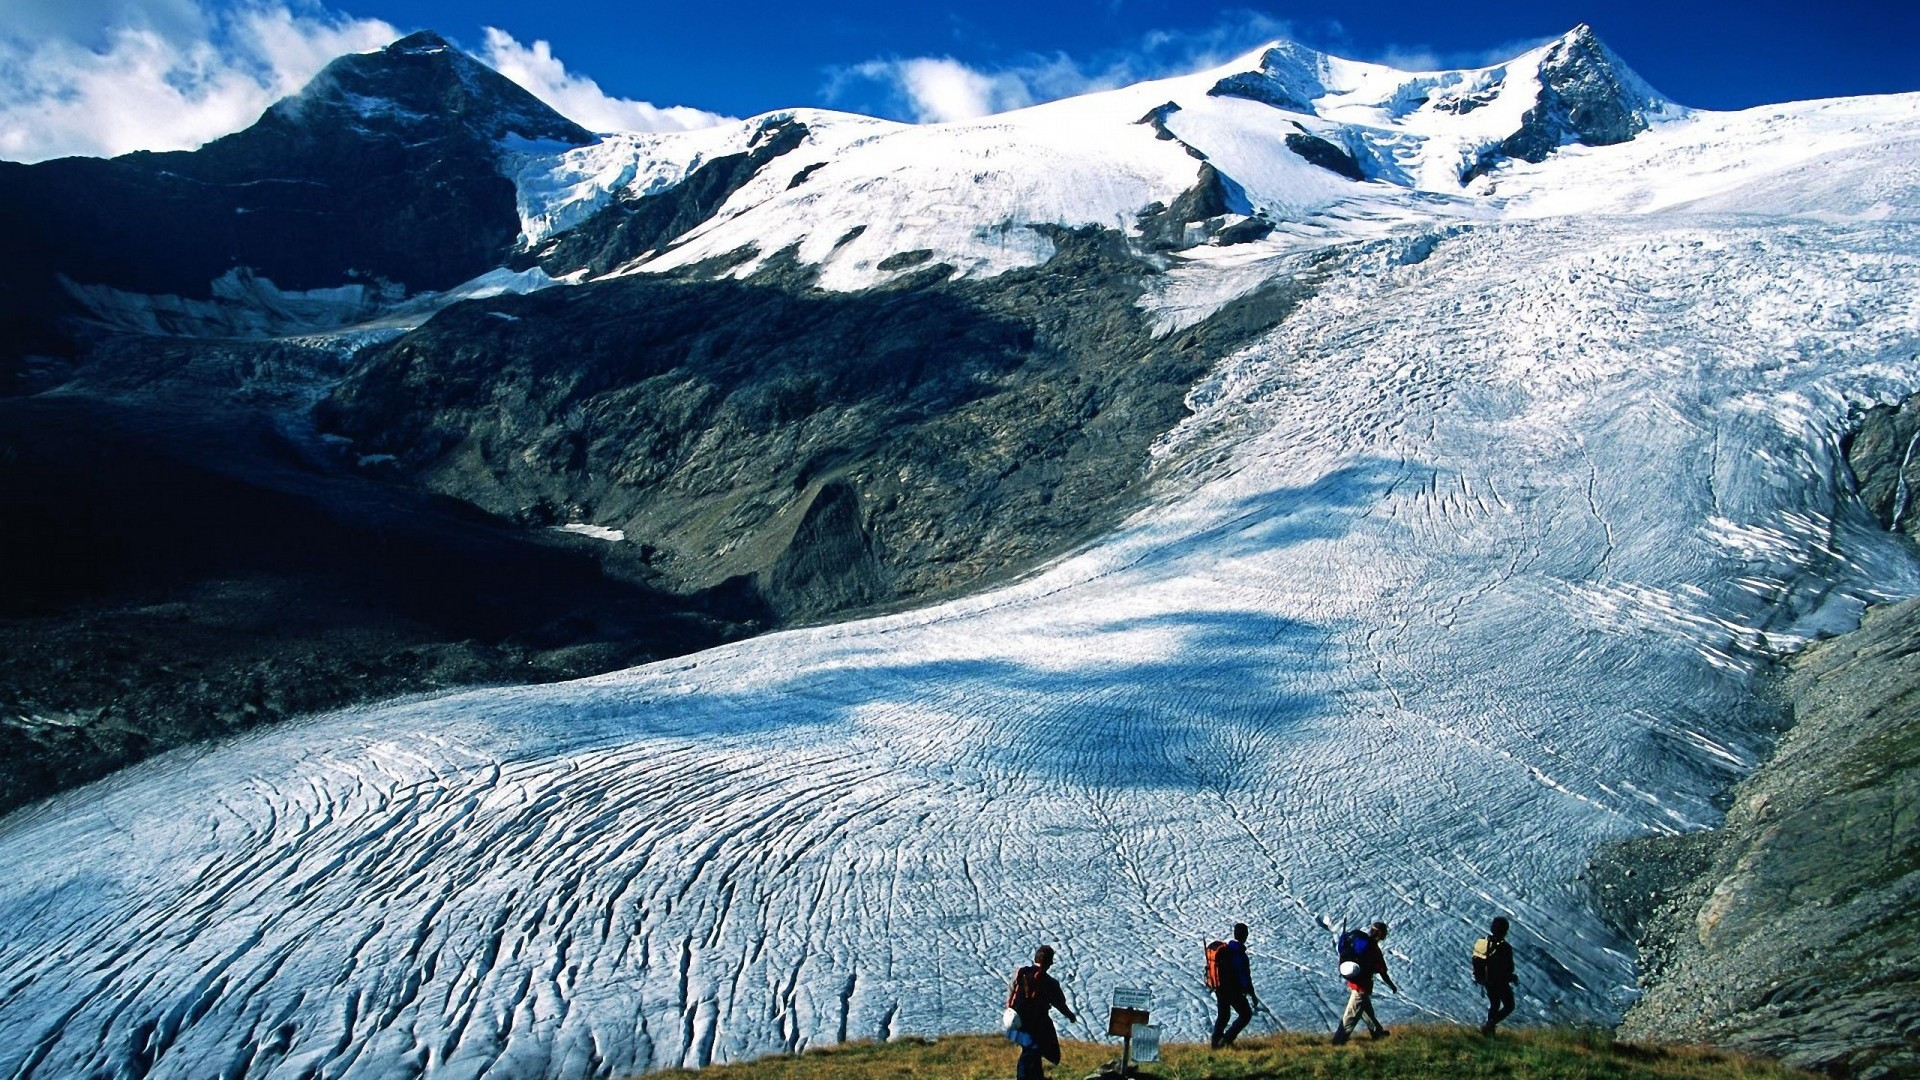 … Background Full HD 1080p. Wallpaper mountains, snow,  avalanche, travel, expedition